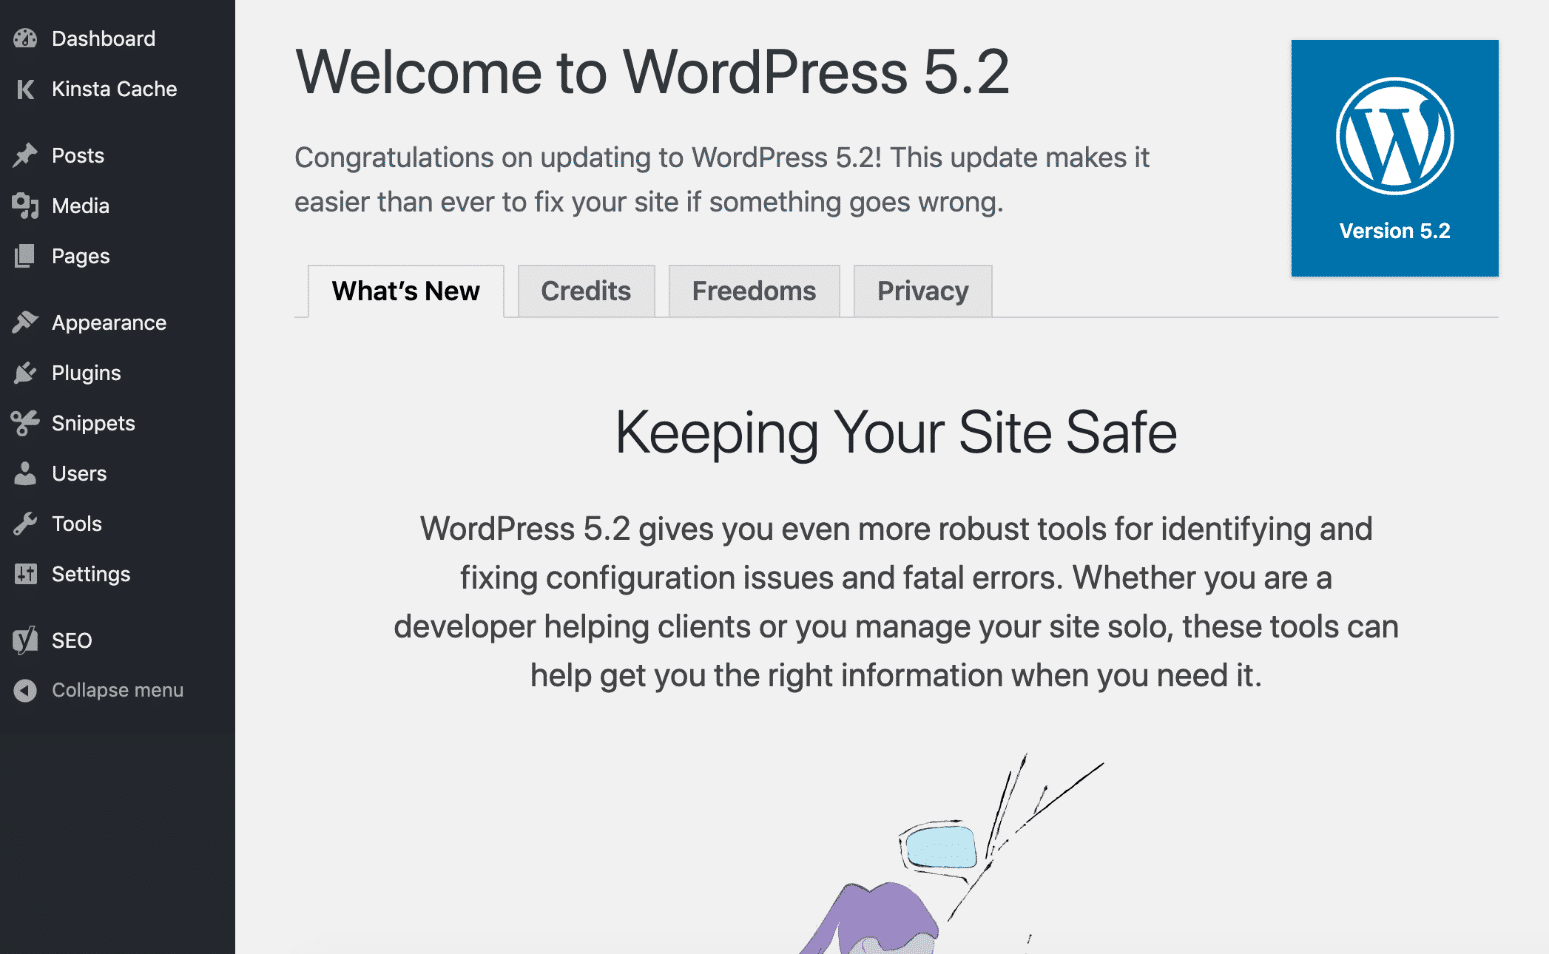 WordPress 5.2 welcome screen